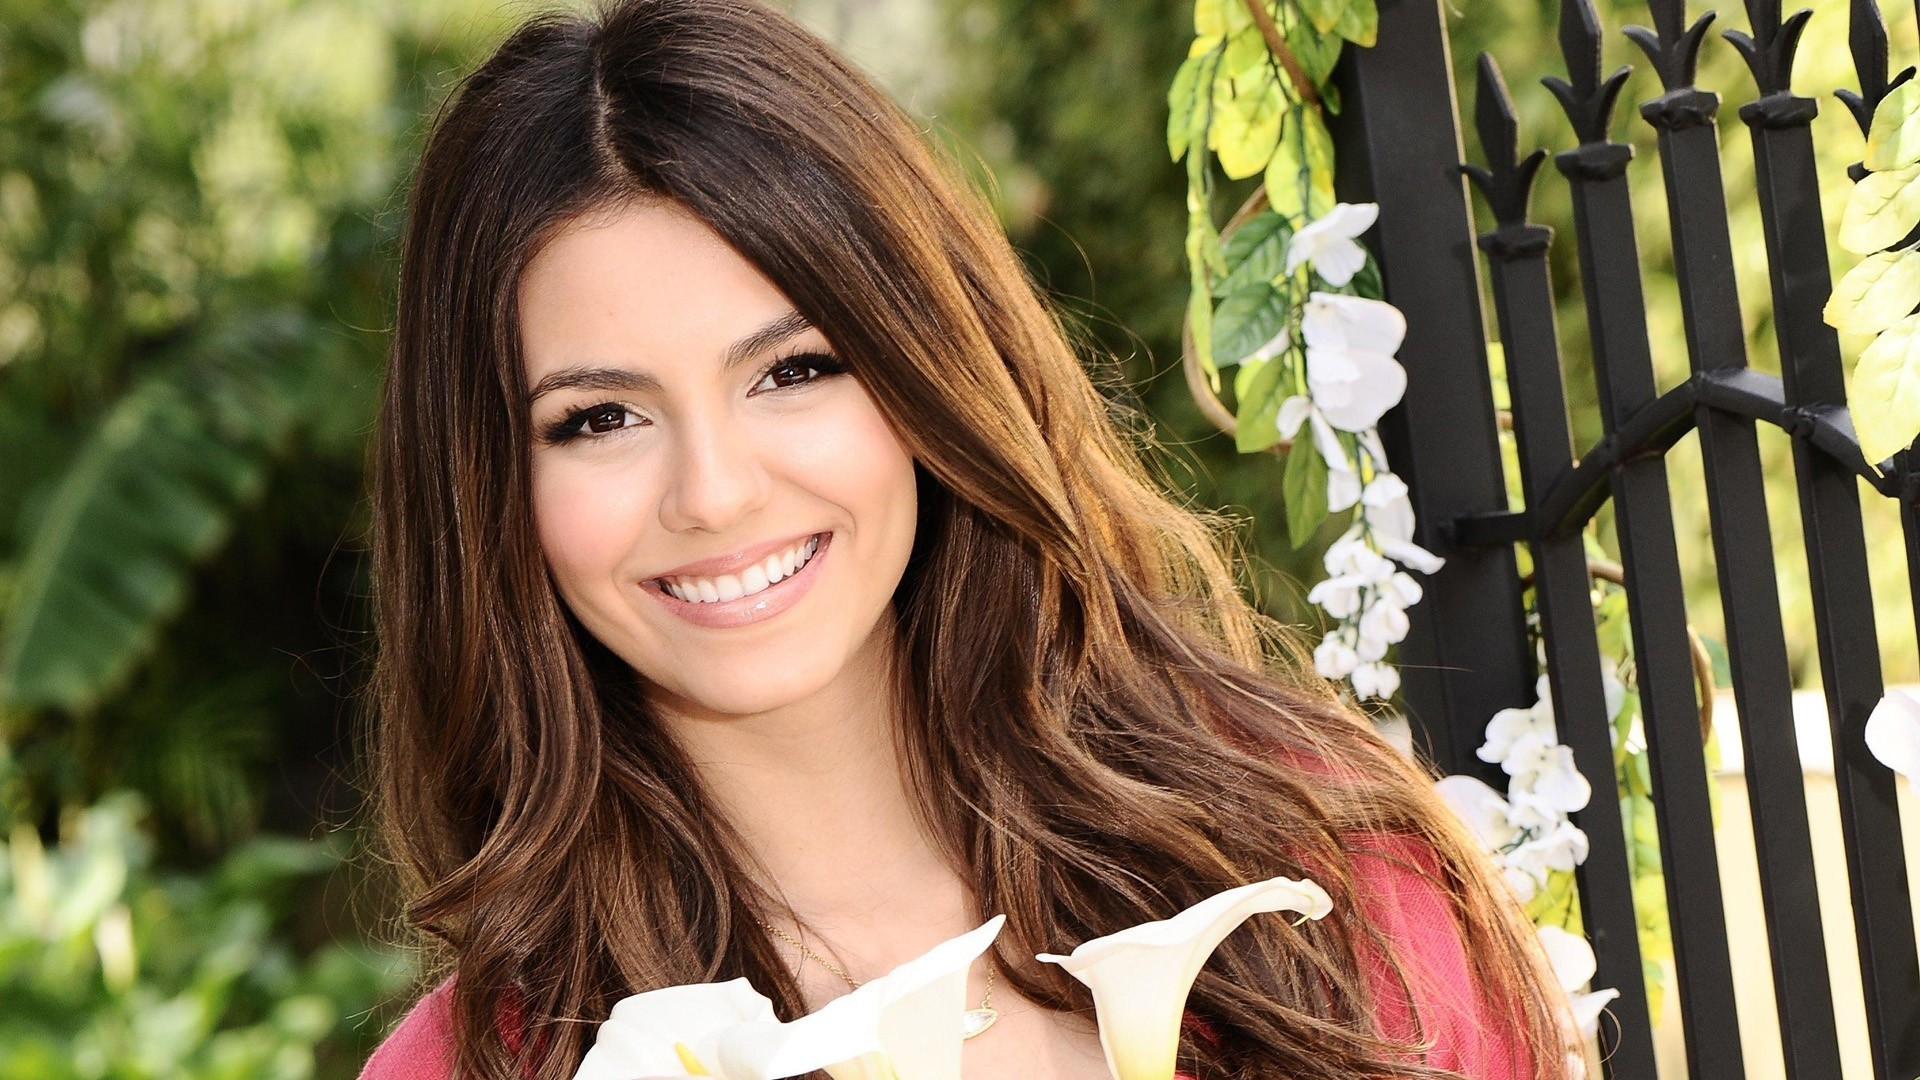 amazing victoria justice lovely smile face with tree background mobile free hd desktop wallpaper